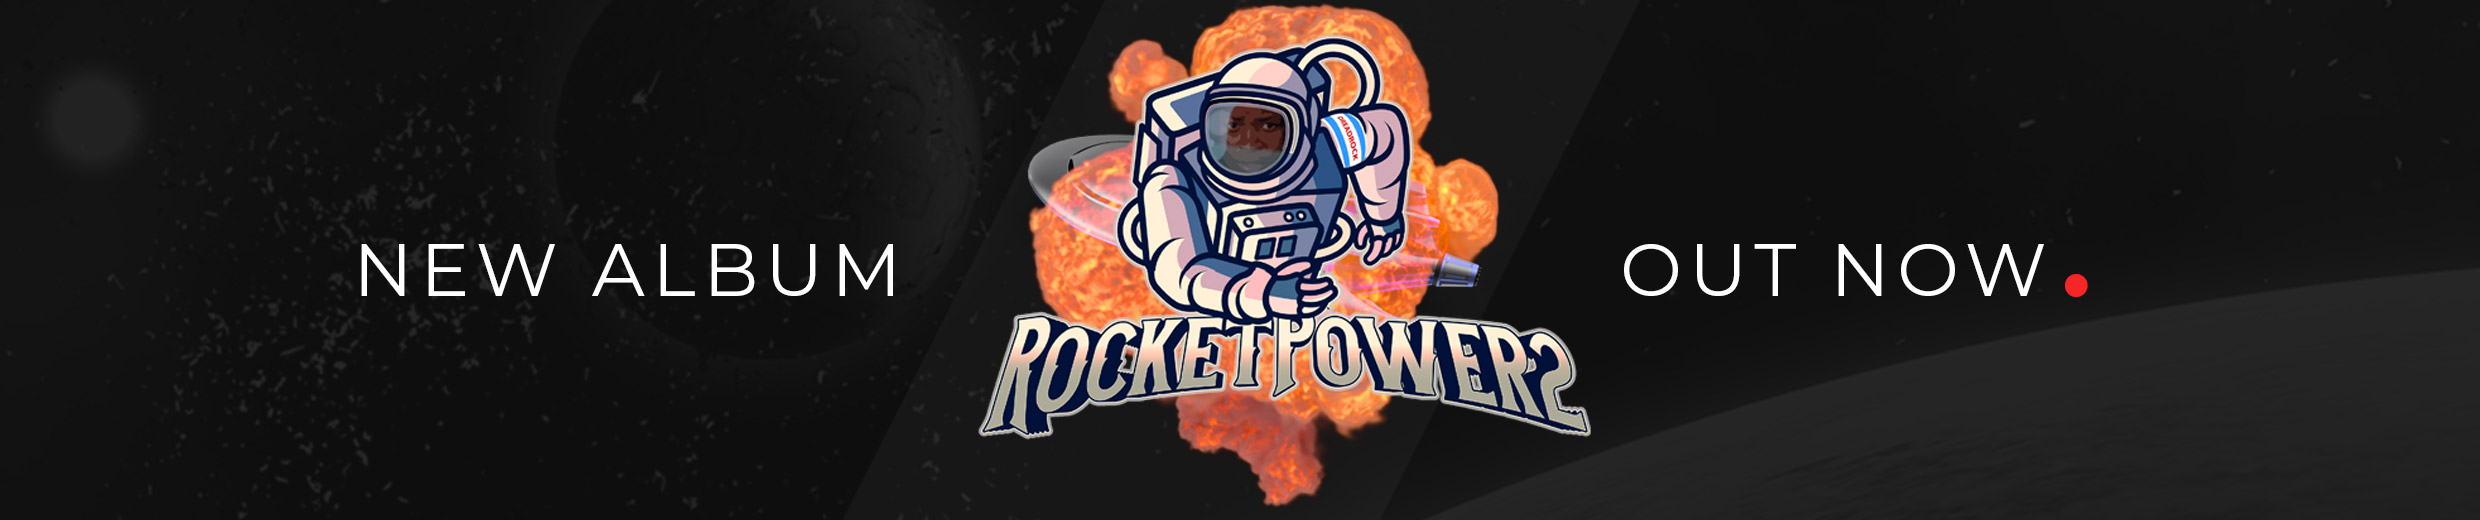 rocketpower2-dreadrock-swervnation-outnow-hiphop-chicago-westside,usa